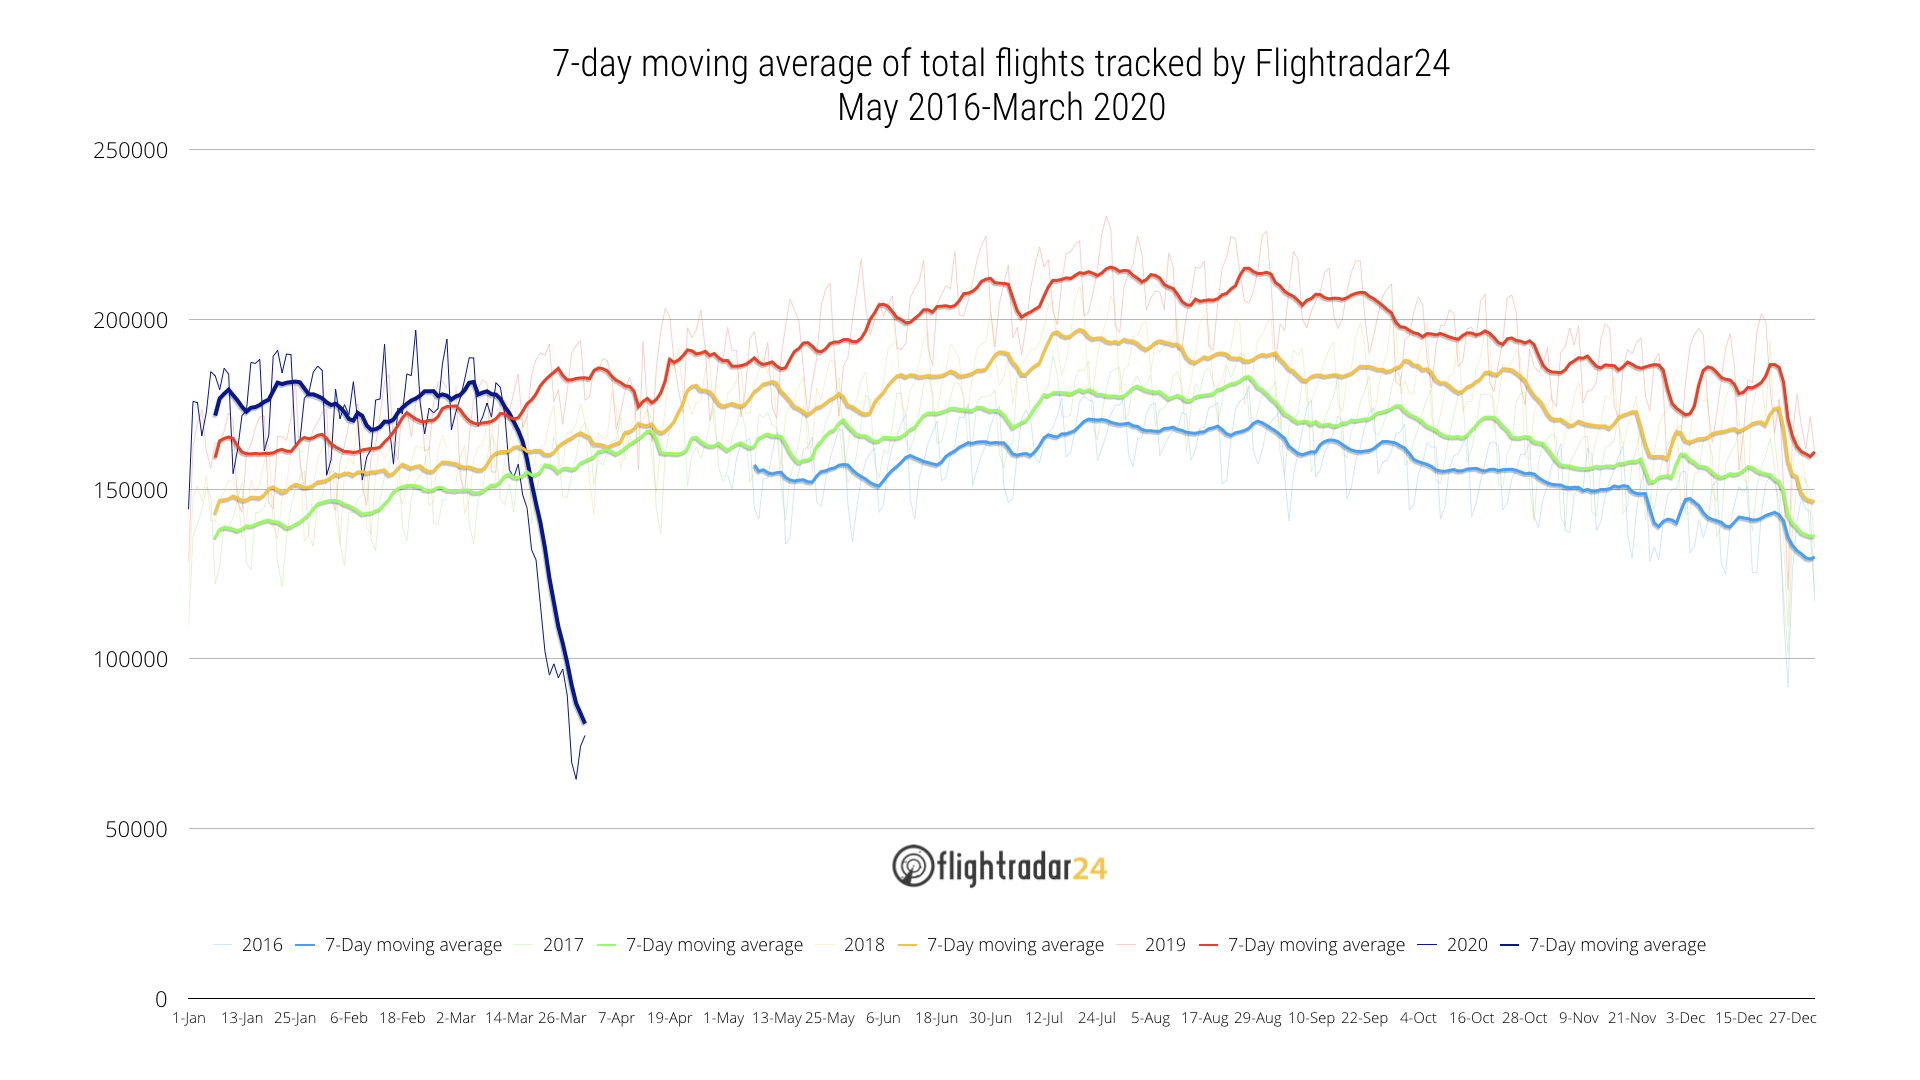 Total flights through March 2020